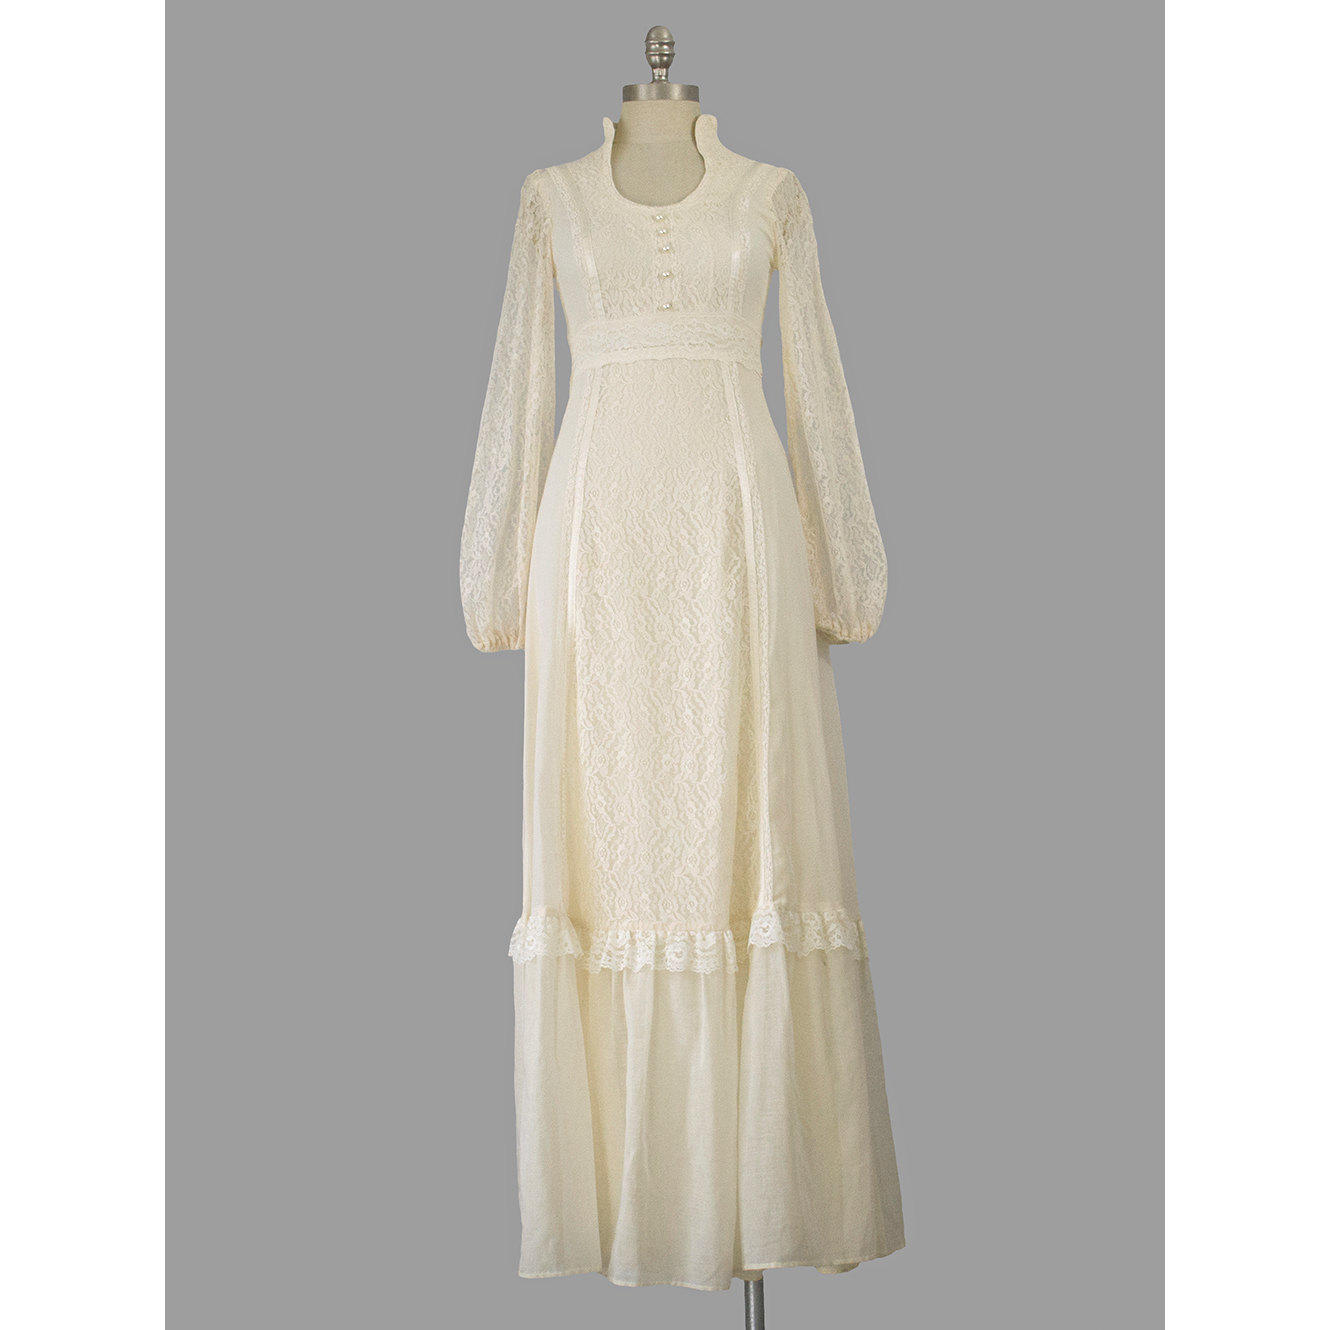 Gunne Sax Style 70s Maxi Dress Cream from Recycling History